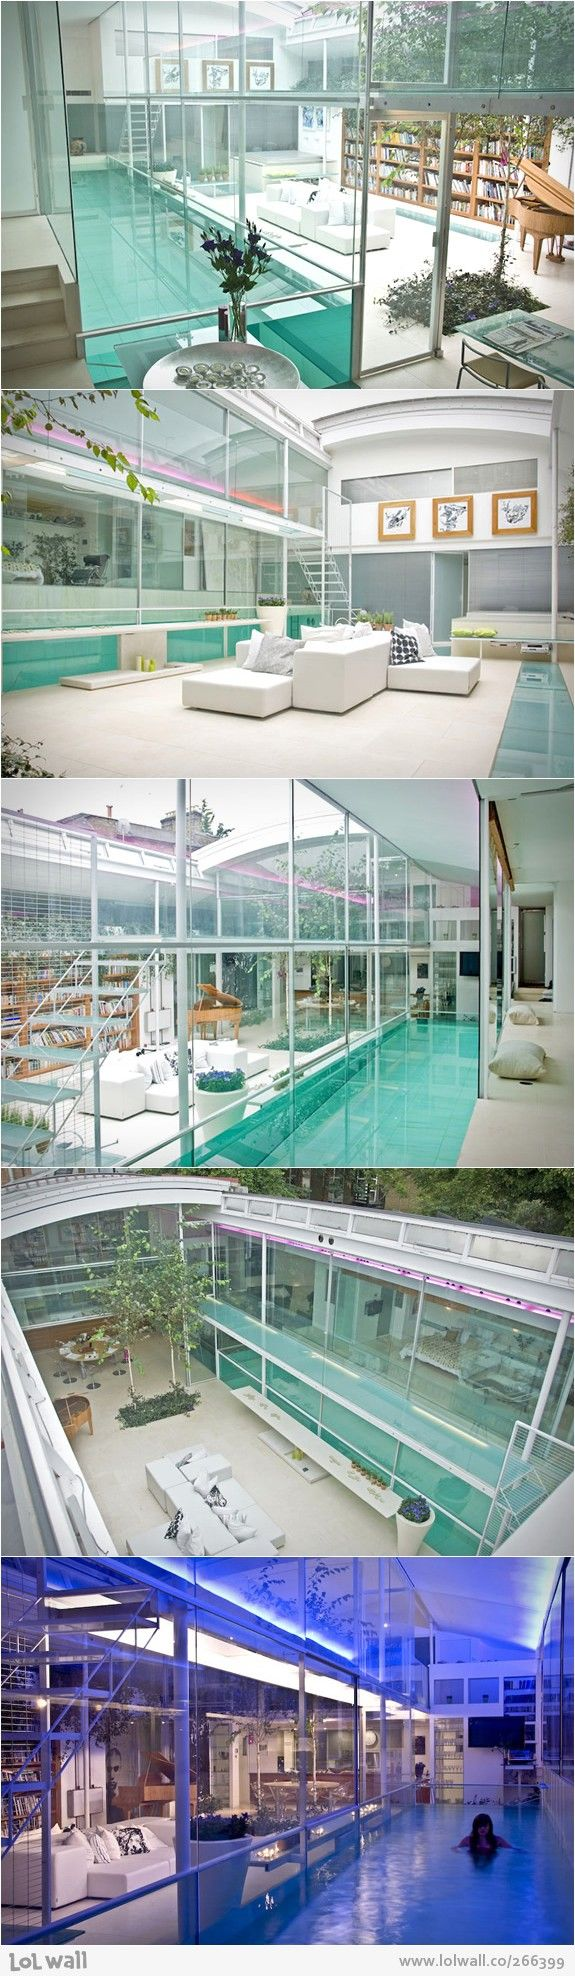 glass house wrap around pool crazy homes unique homes big houses